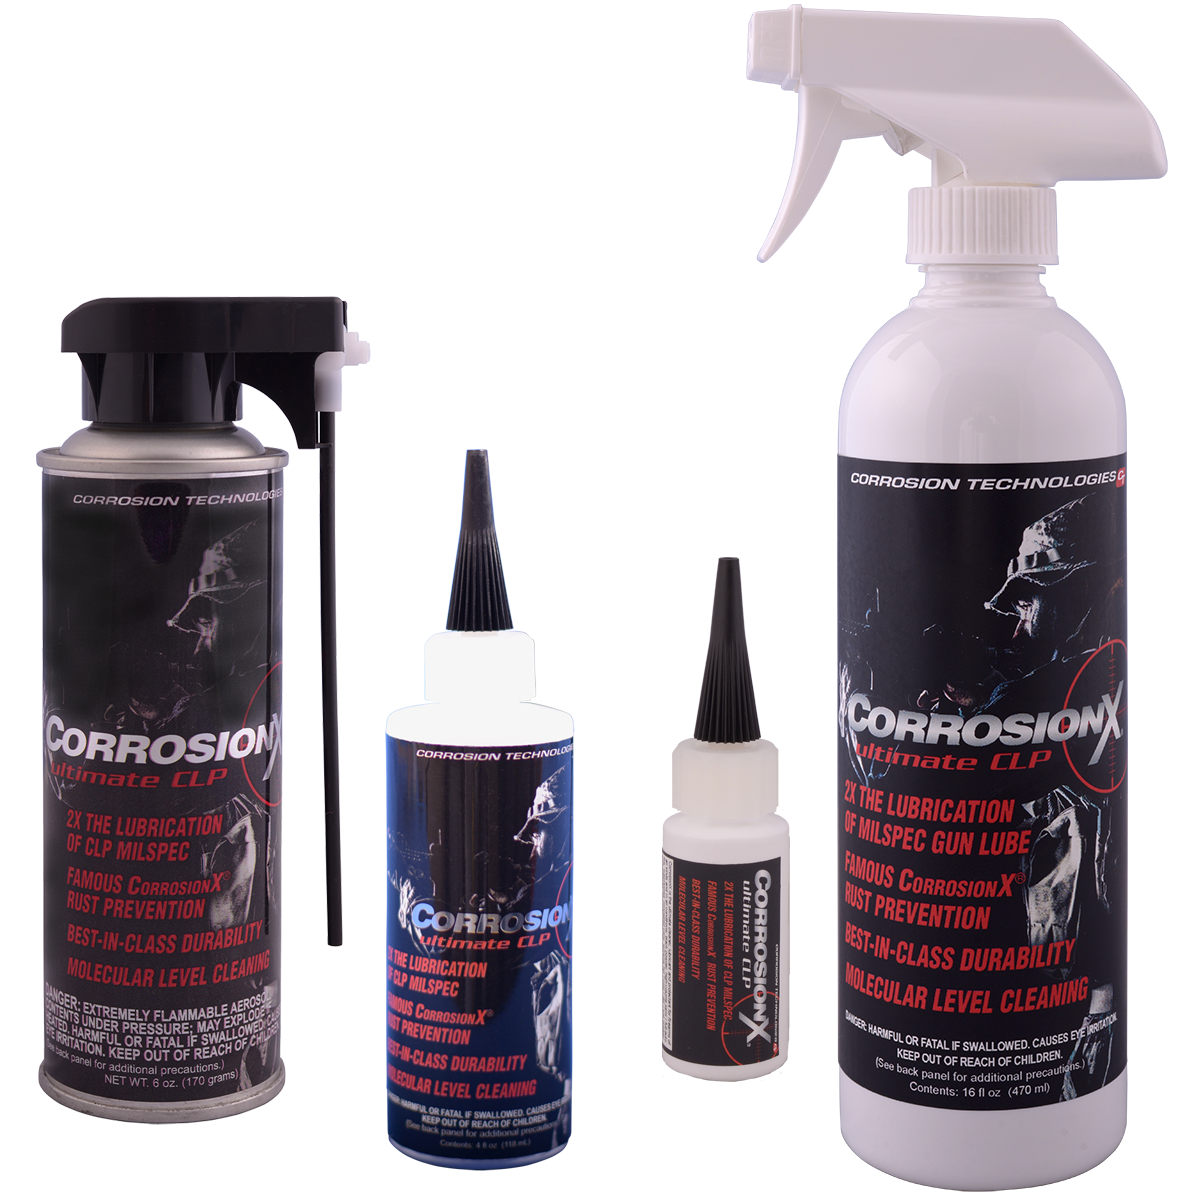 CorrosionX® Ultimate CLP cleaner lubricant and protectant for firearms